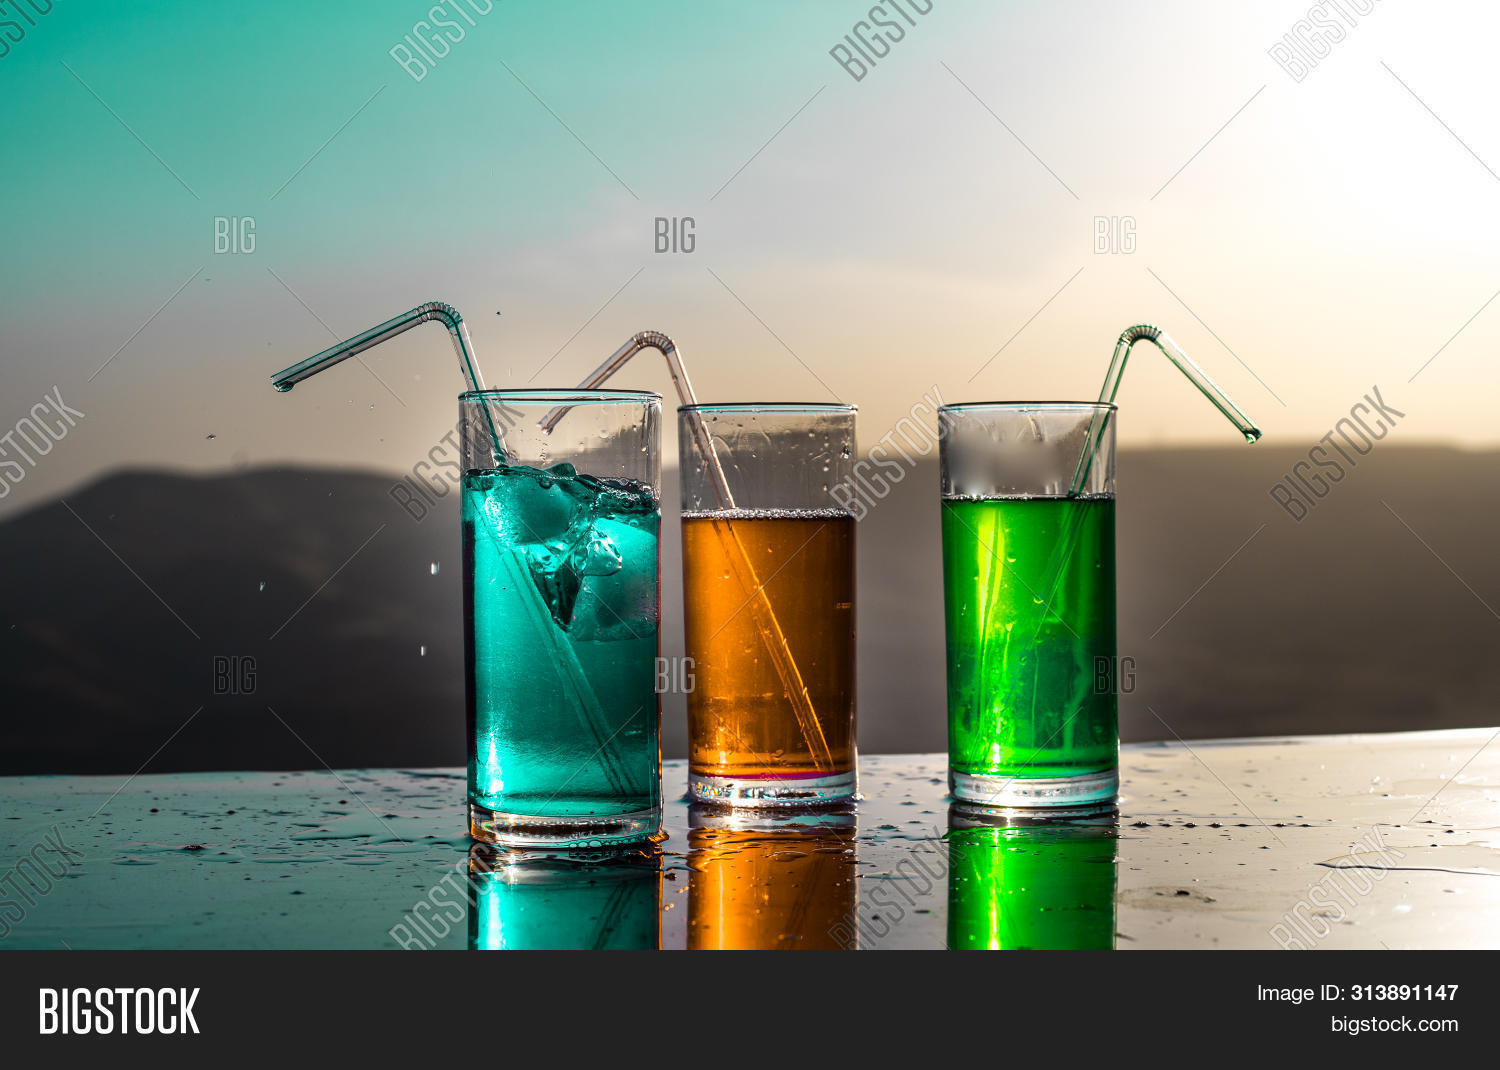 alcohol,alcoholic,background,bar,beach,beverage,celebration,chill,cocktail,cold,cool,cooling,drink,dusk,evening,exotic,fresh,glass,green,holiday,ice,juice,light,liquid,lounge,luxury,nature,orange,outdoor,party,refreshing,relaxation,rest,sand,sea,silhouette,summer,sun,sundown,sunlight,sunset,sunshine,terrace,travel,tropical,umbrella,vacation,warm,water,yellow